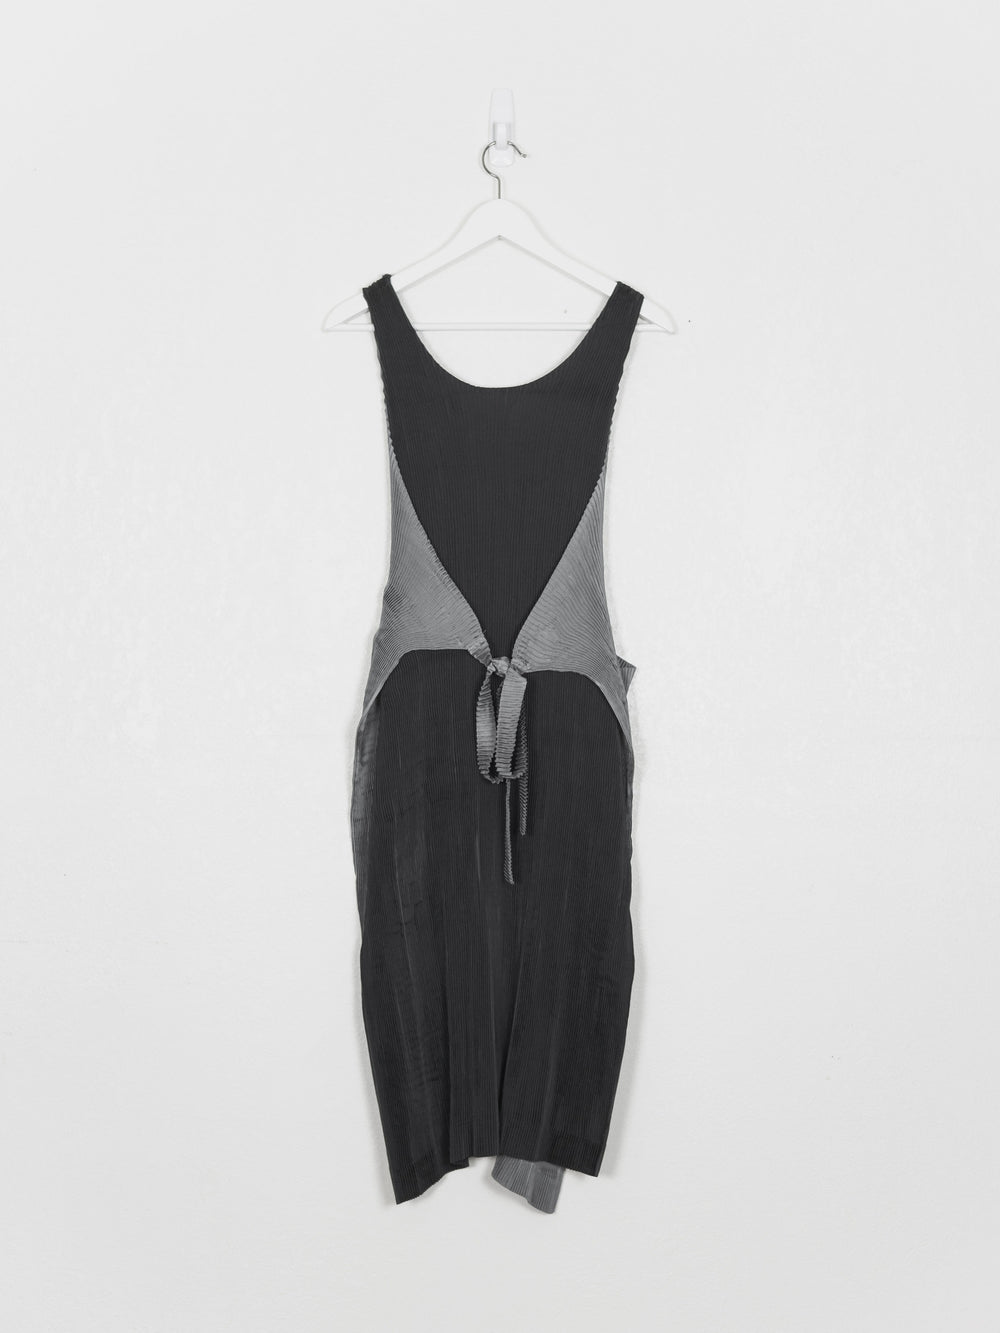 Issey Miyake Pleats Please Apron Dress